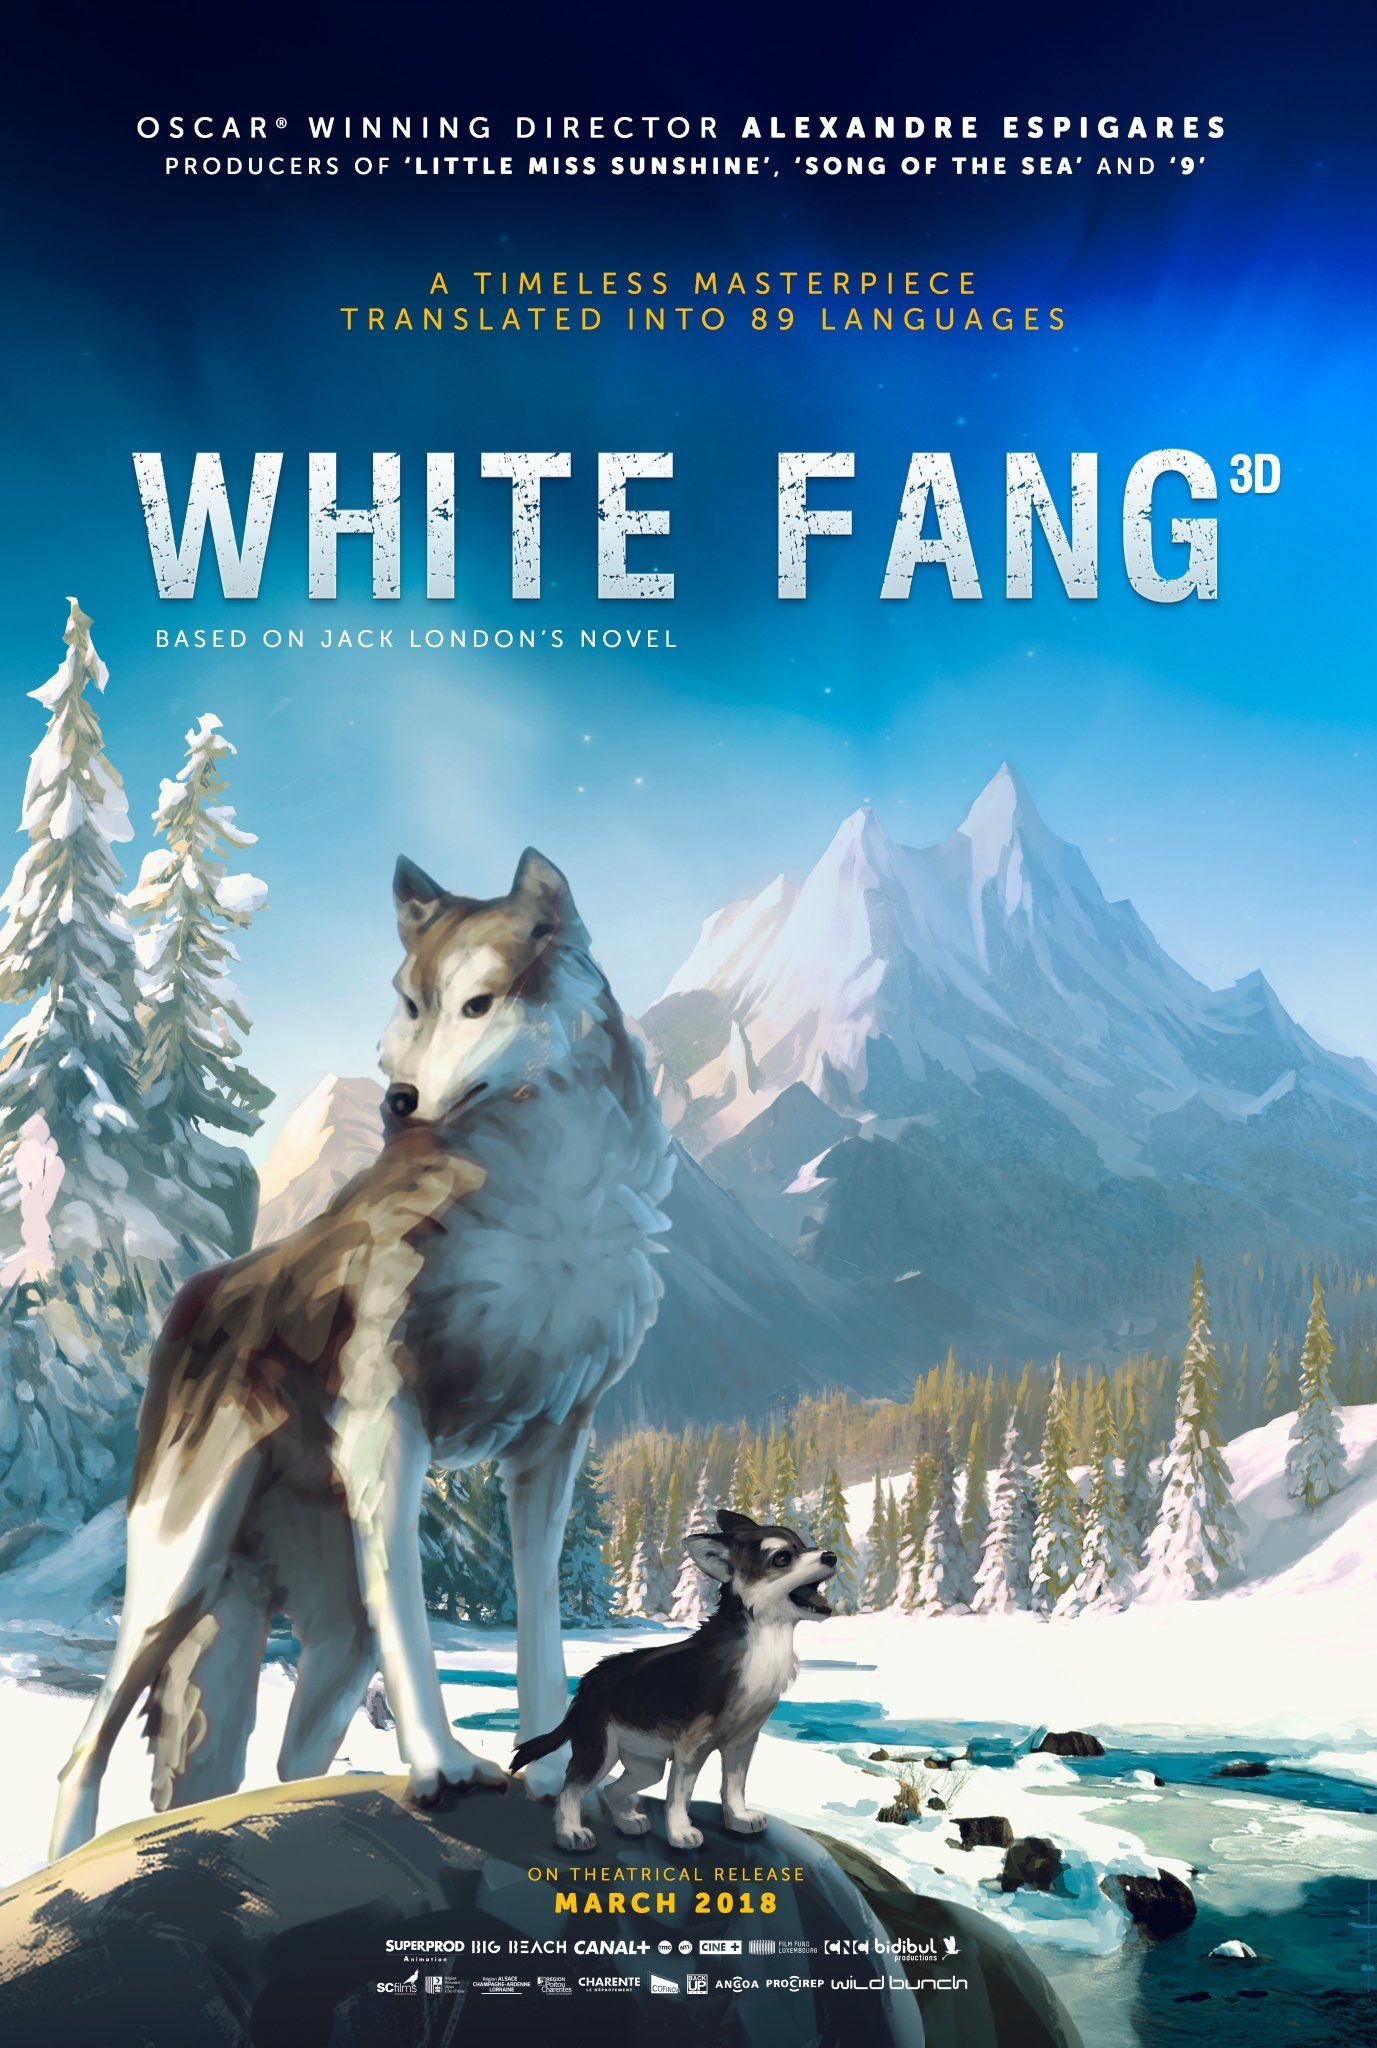 White Fang movie trailer;